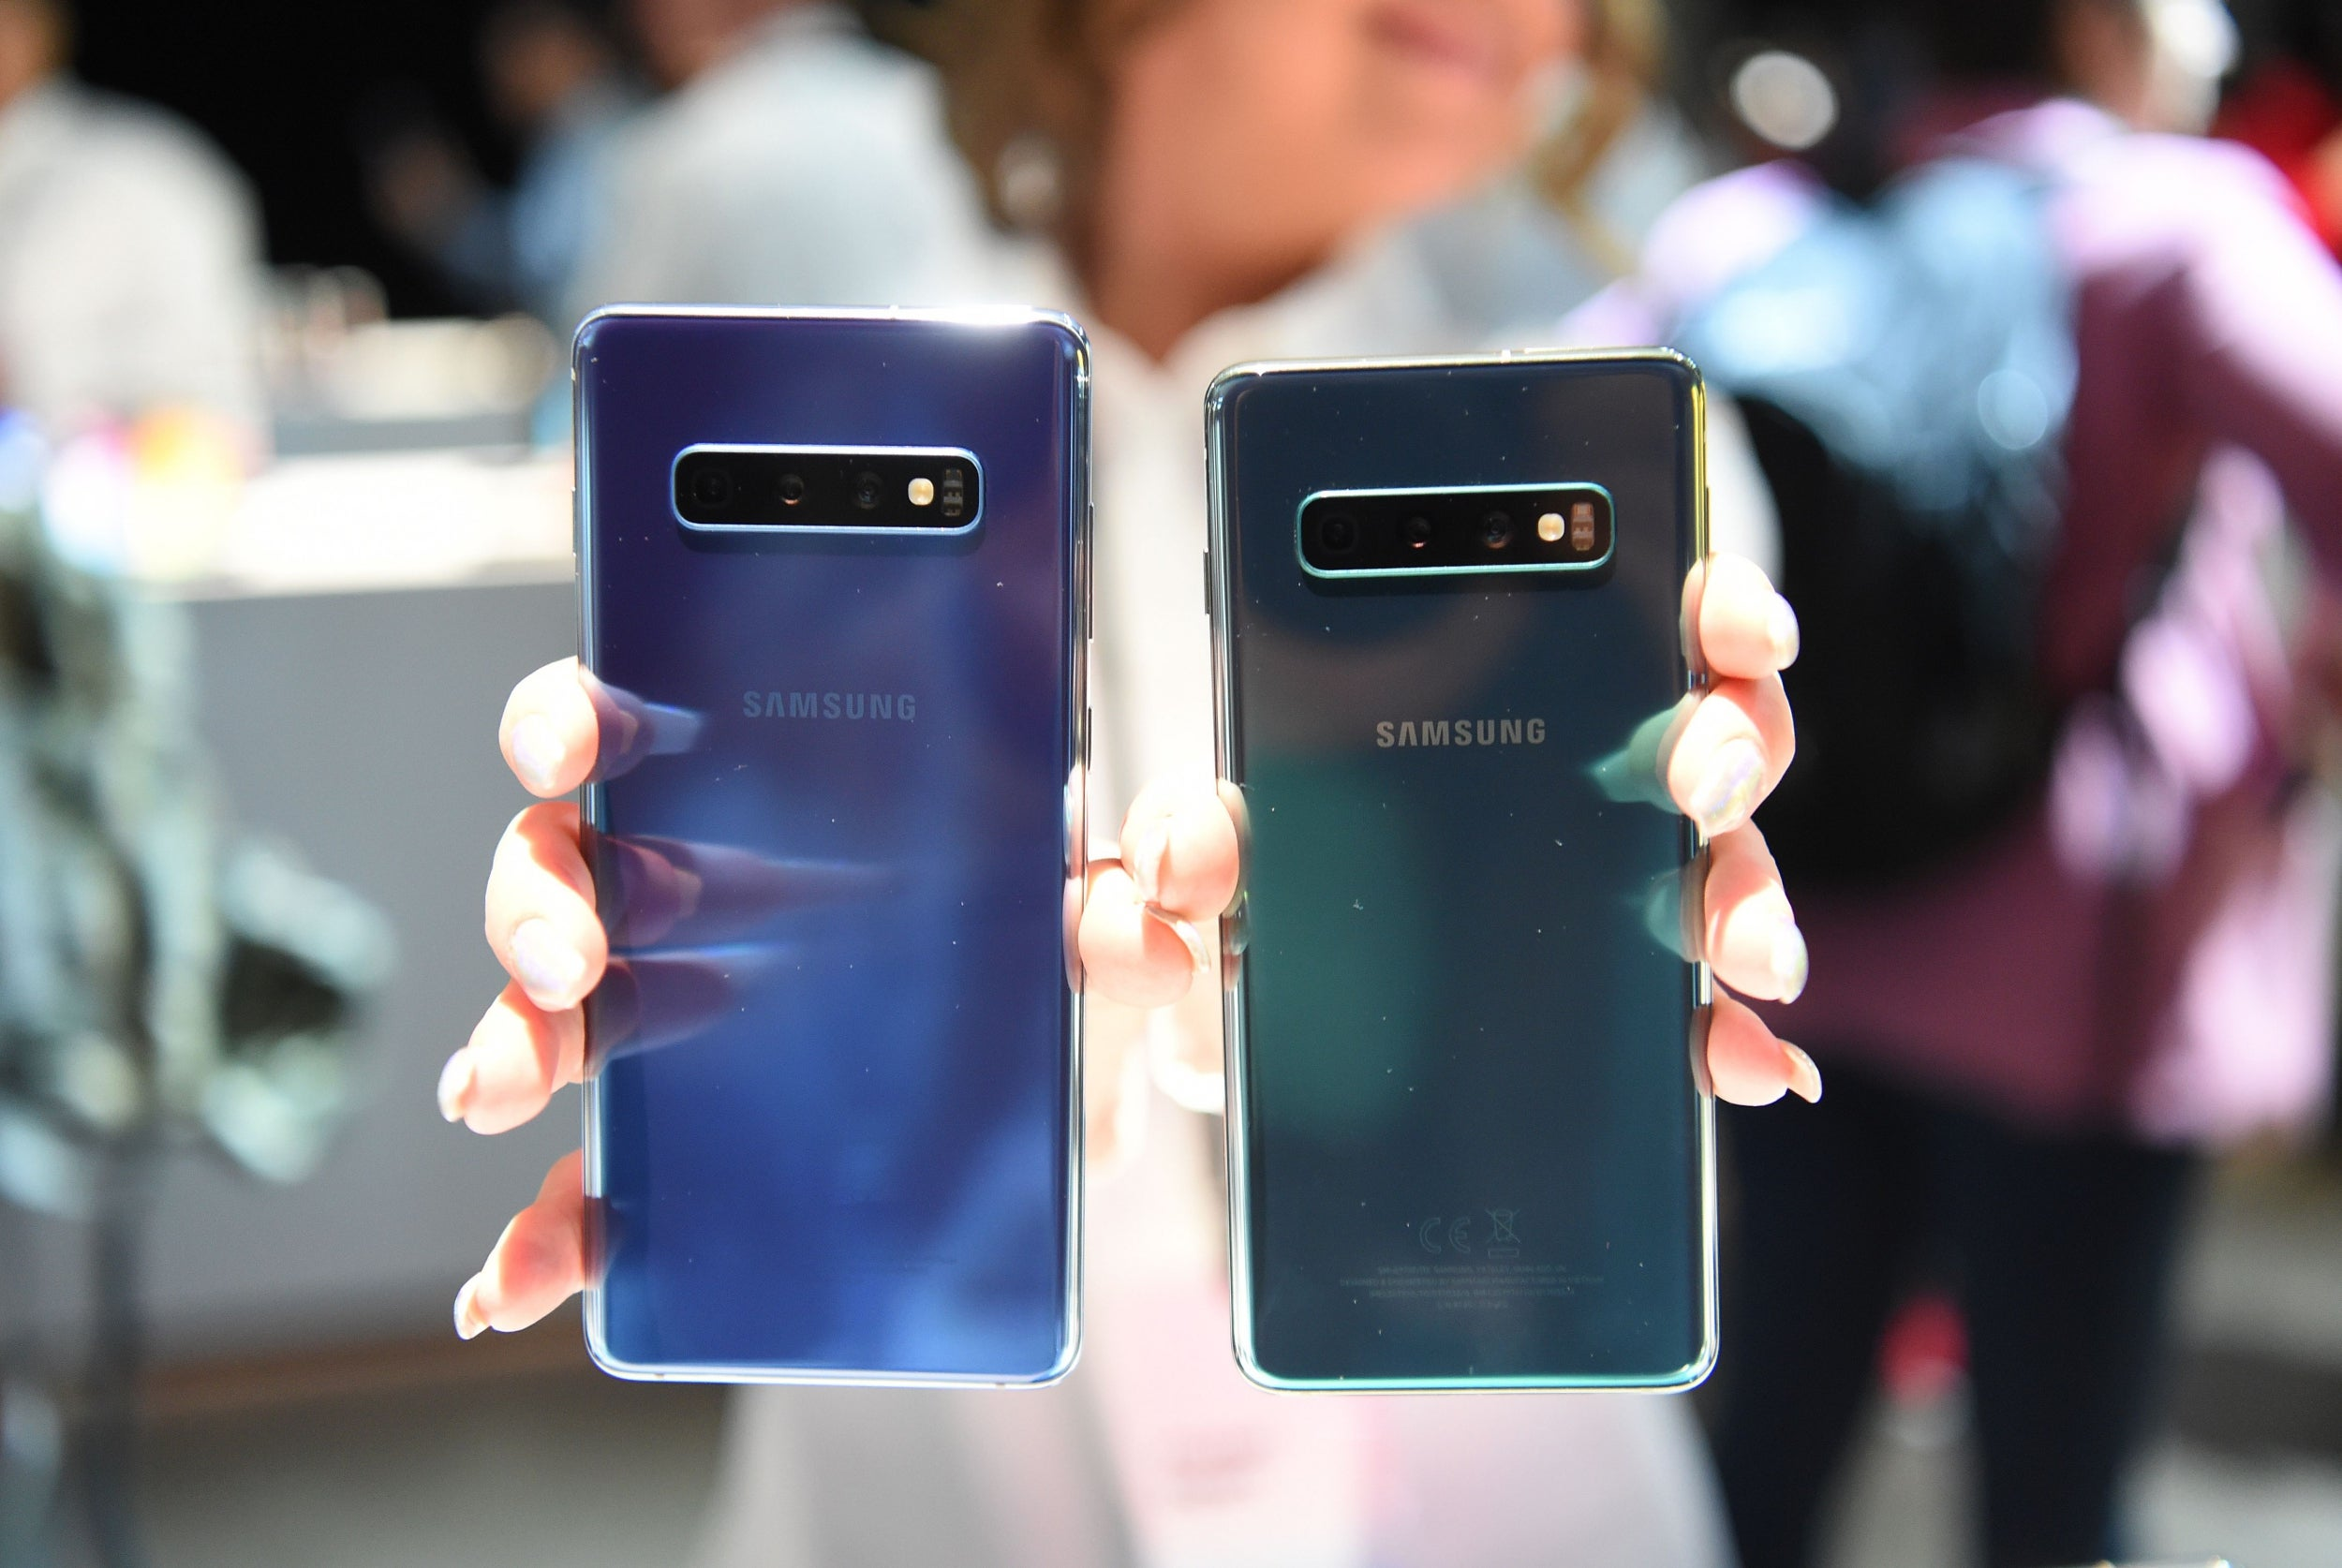 Samsung phones can be unlocked with any fingerprint